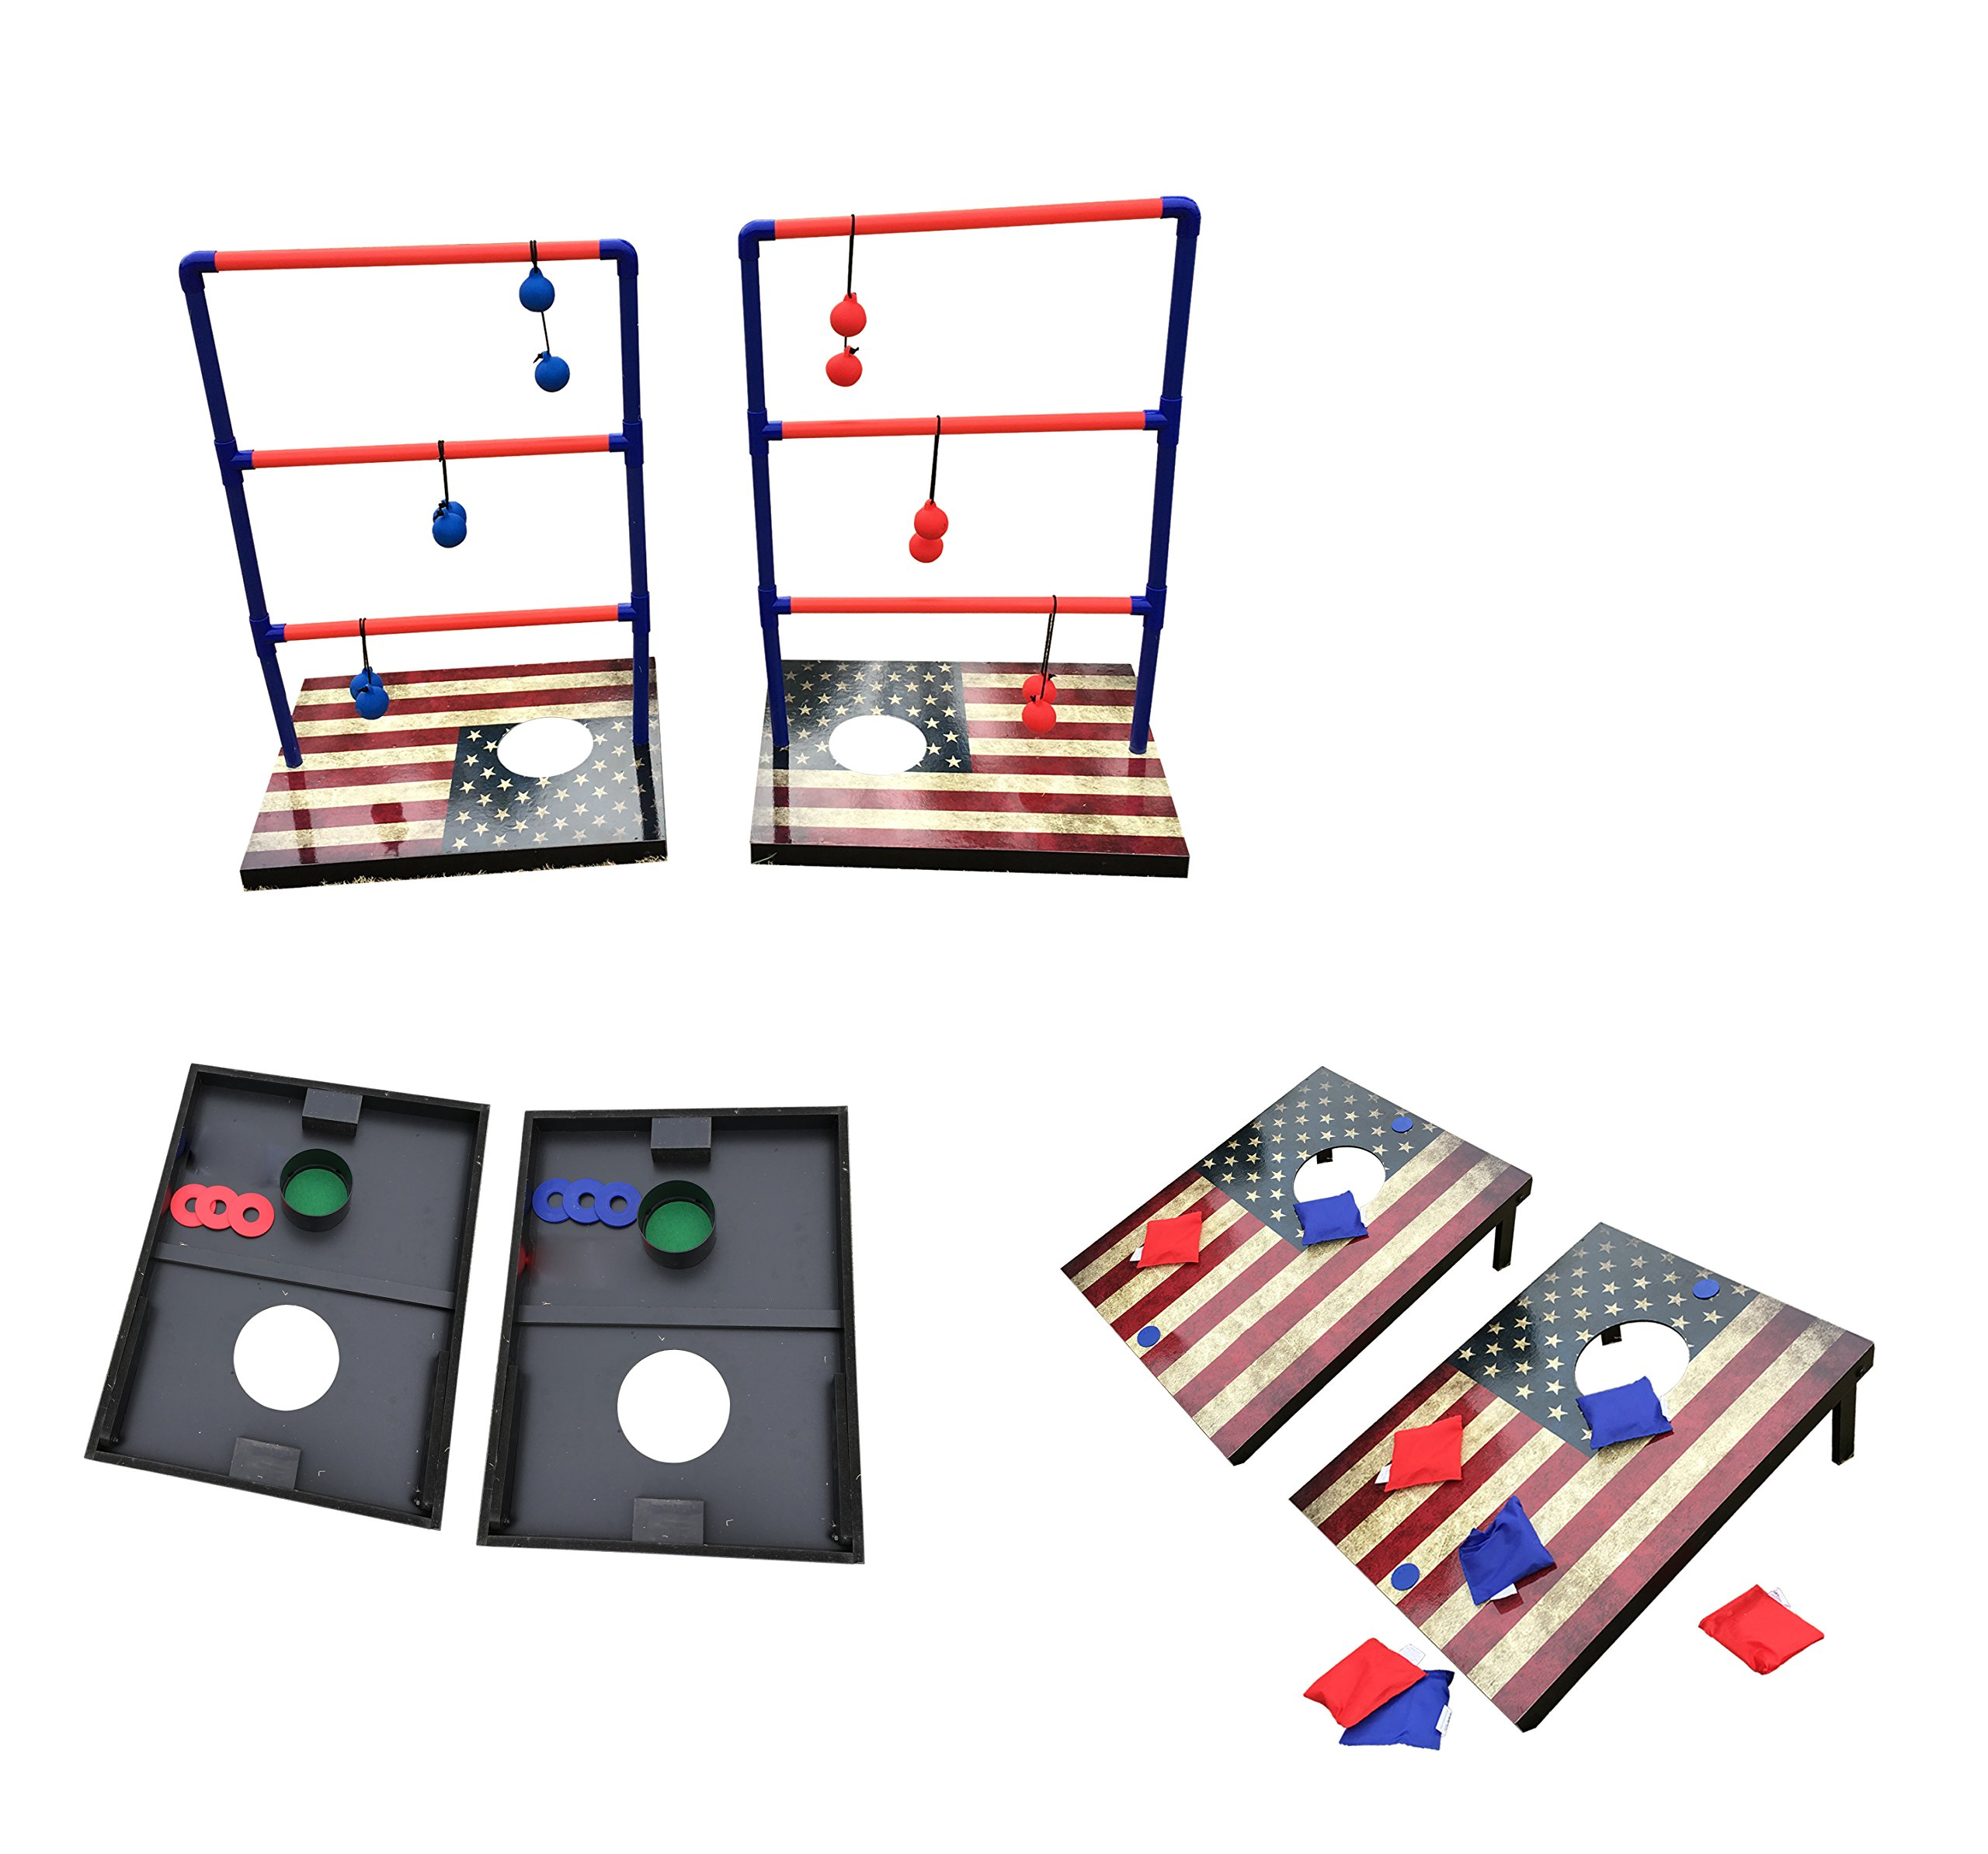 SPORT BEATS SportBeats Combo Toss Game, CornHole Board Bean Bag Toss Game,Ladder Toss and Washer Toss 3 Games in 1 for Indoor/Outdoor Fun by SPORT BEATS